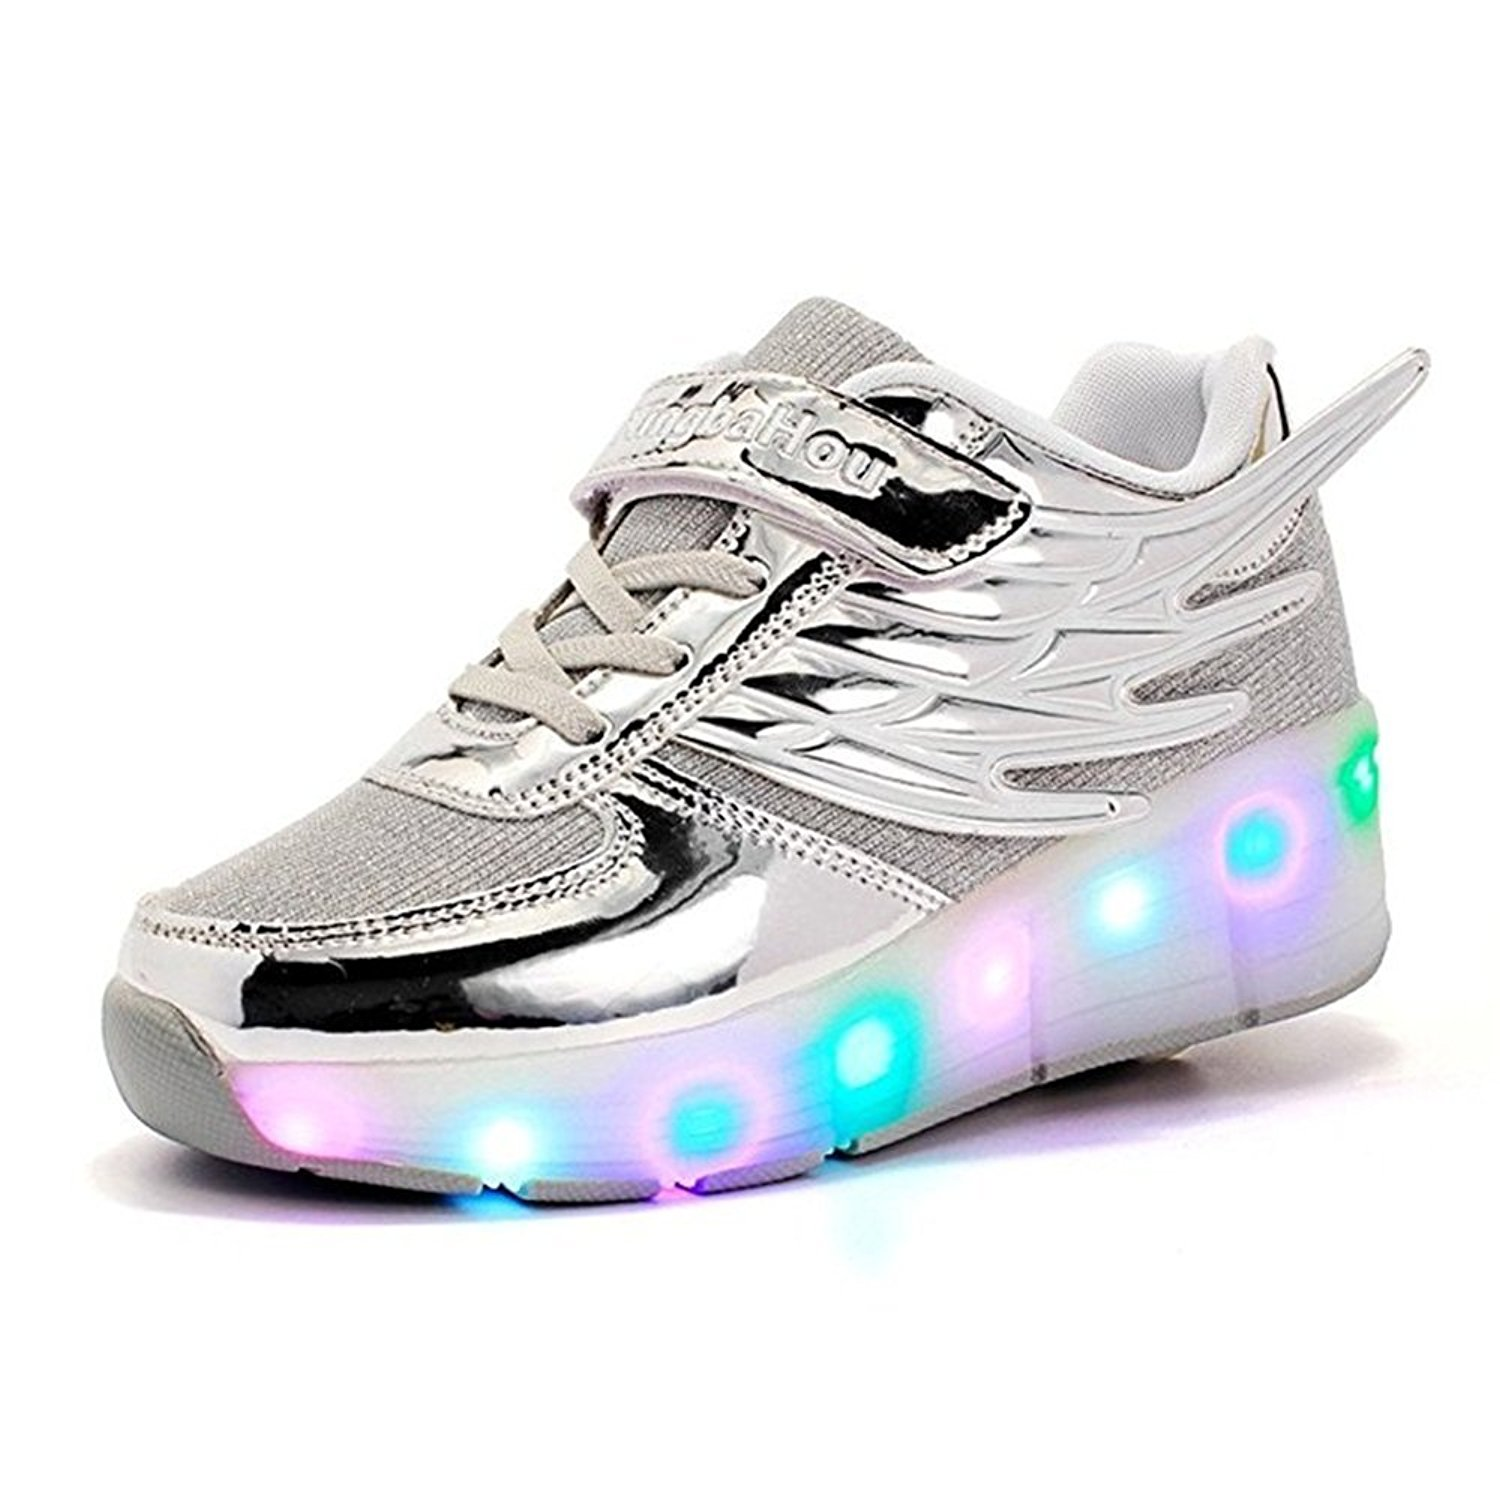 Kid Wings LED Light Up Roller Wheel Shoes Athletic Sneaker Sport Shoes Dance Boot Boy Girl ?silver 5 M US Big Kid?